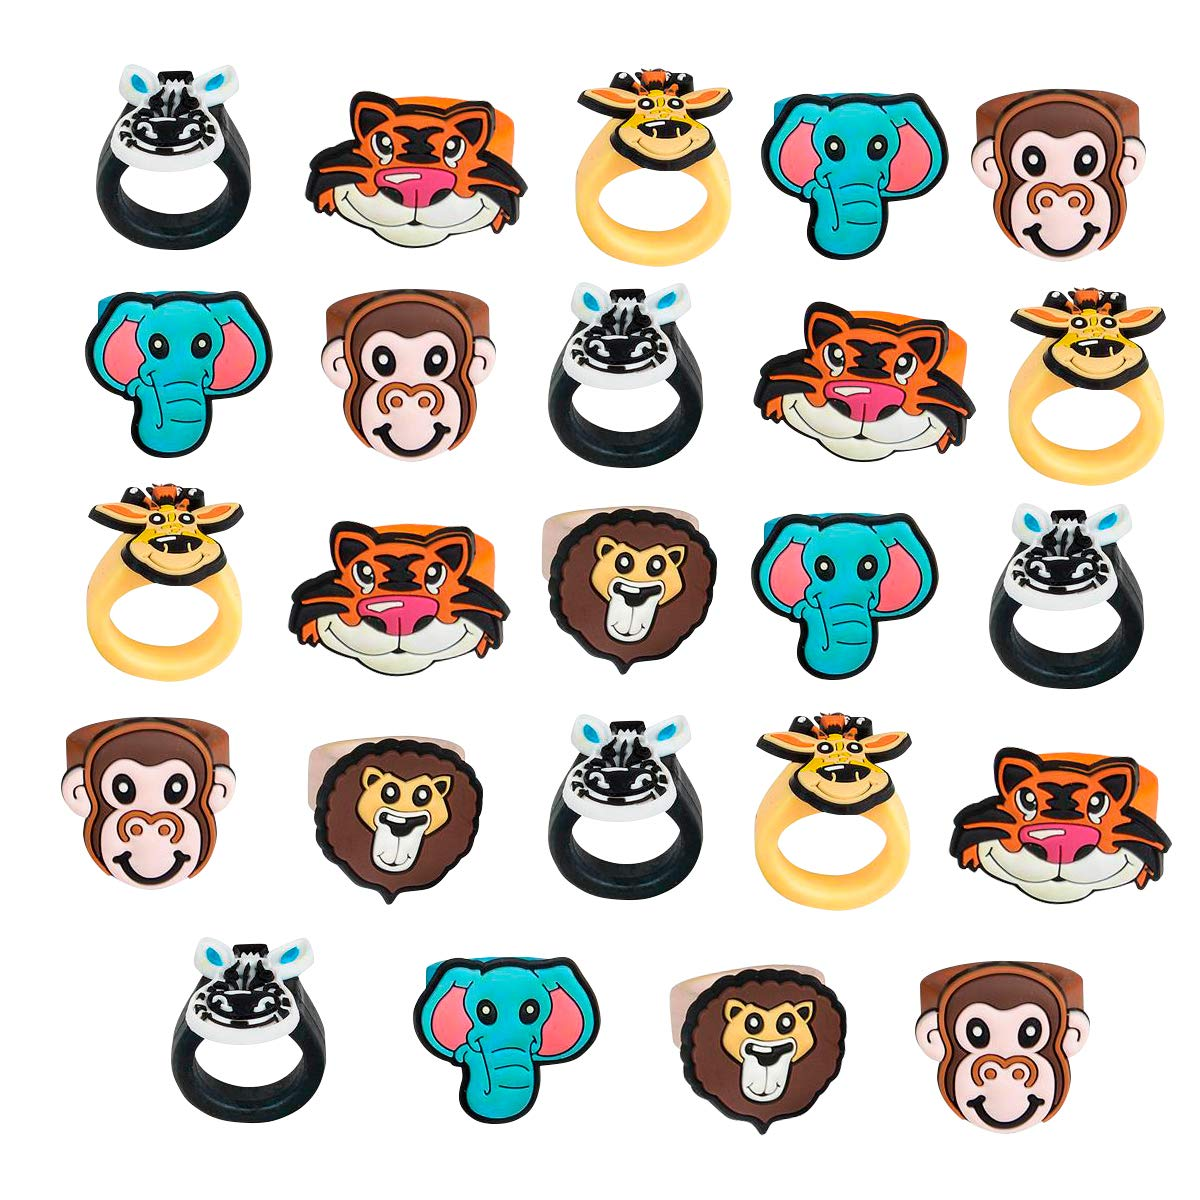 Kicko Zoo Animal Rubber Ring - Pack of 24 1 Inch Party Favor Rings for Children Fashion Accessory, Pretend Play, Cake Toppers, and Safari themed Party Supplies by Kicko